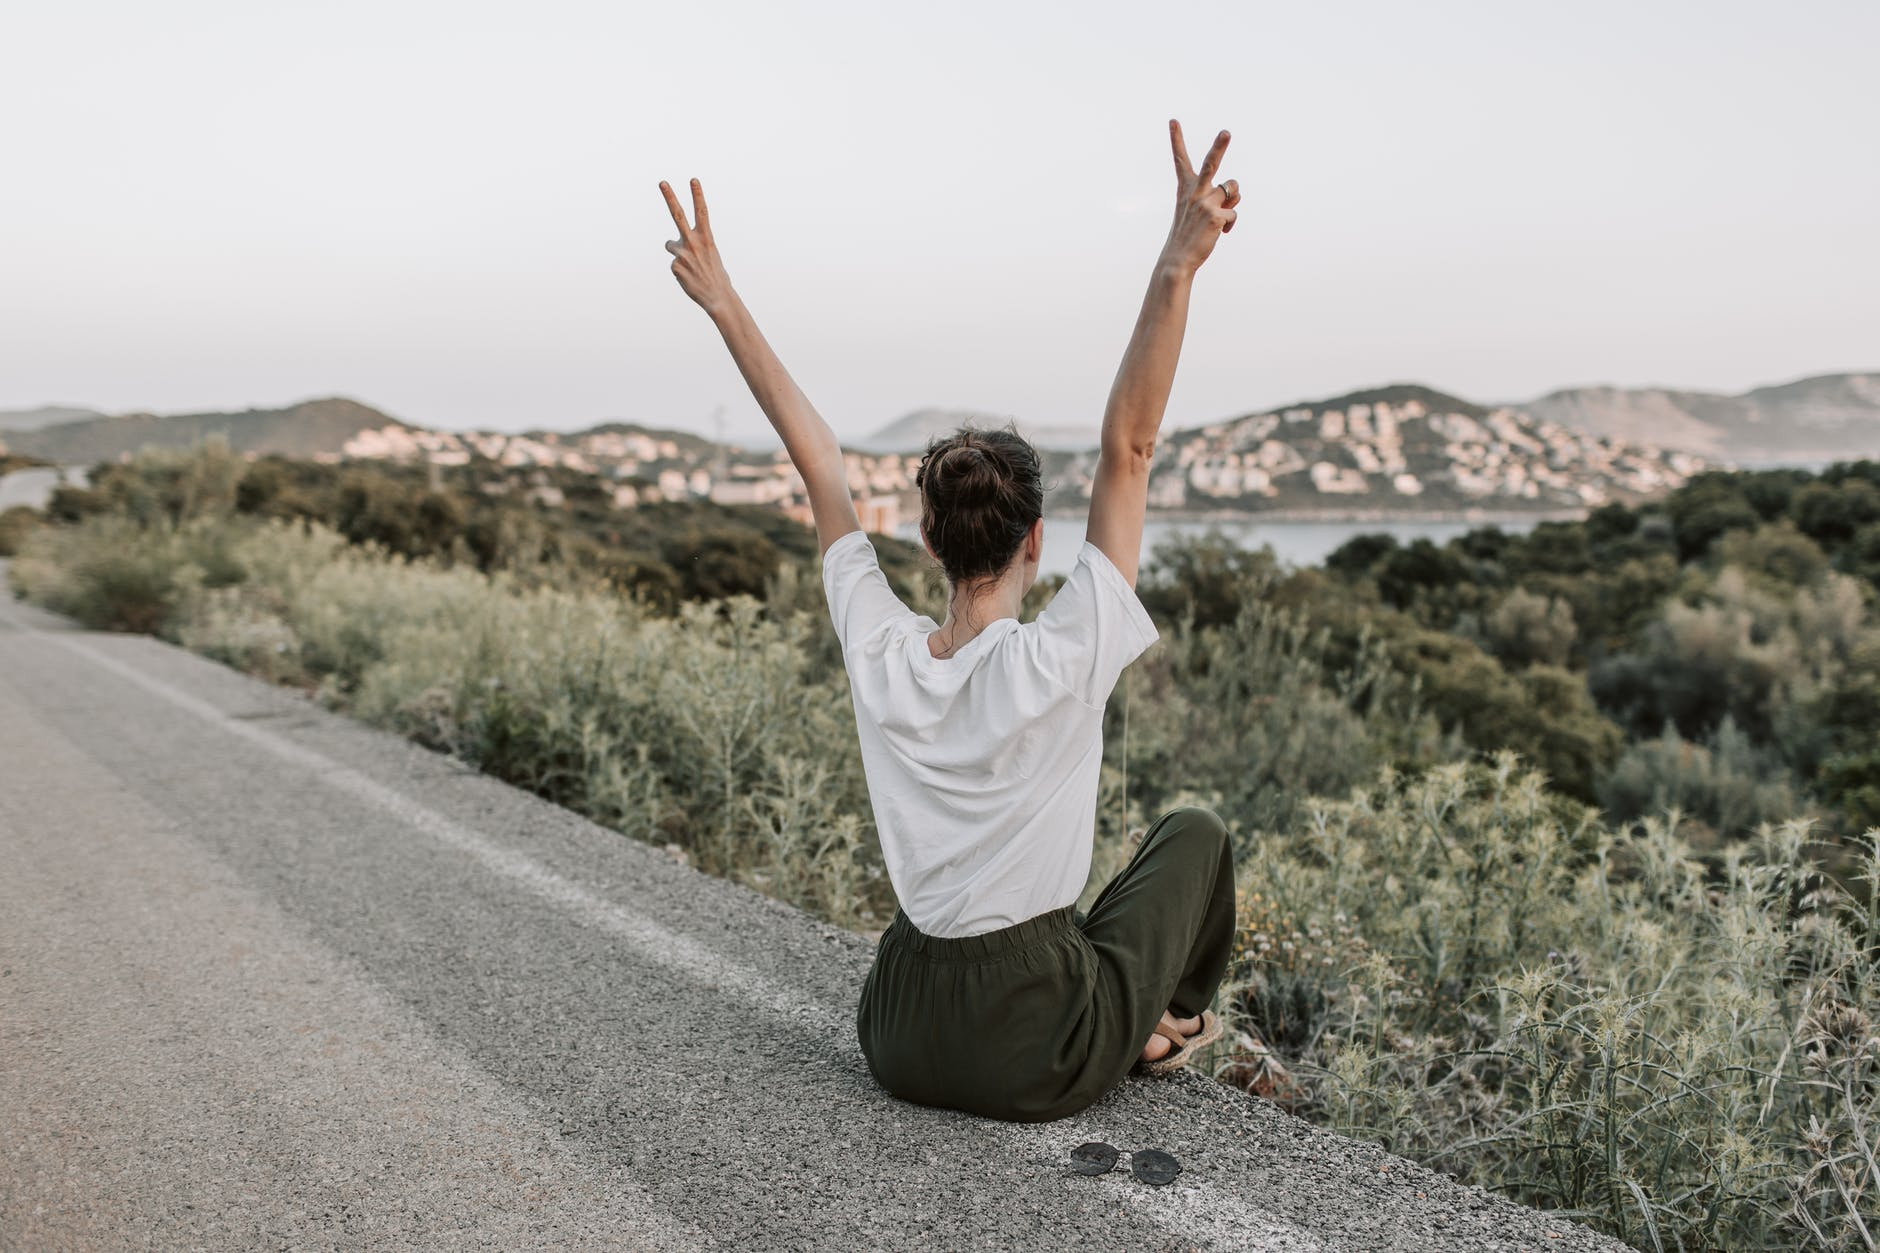 woman sitting on the road making a peace sign